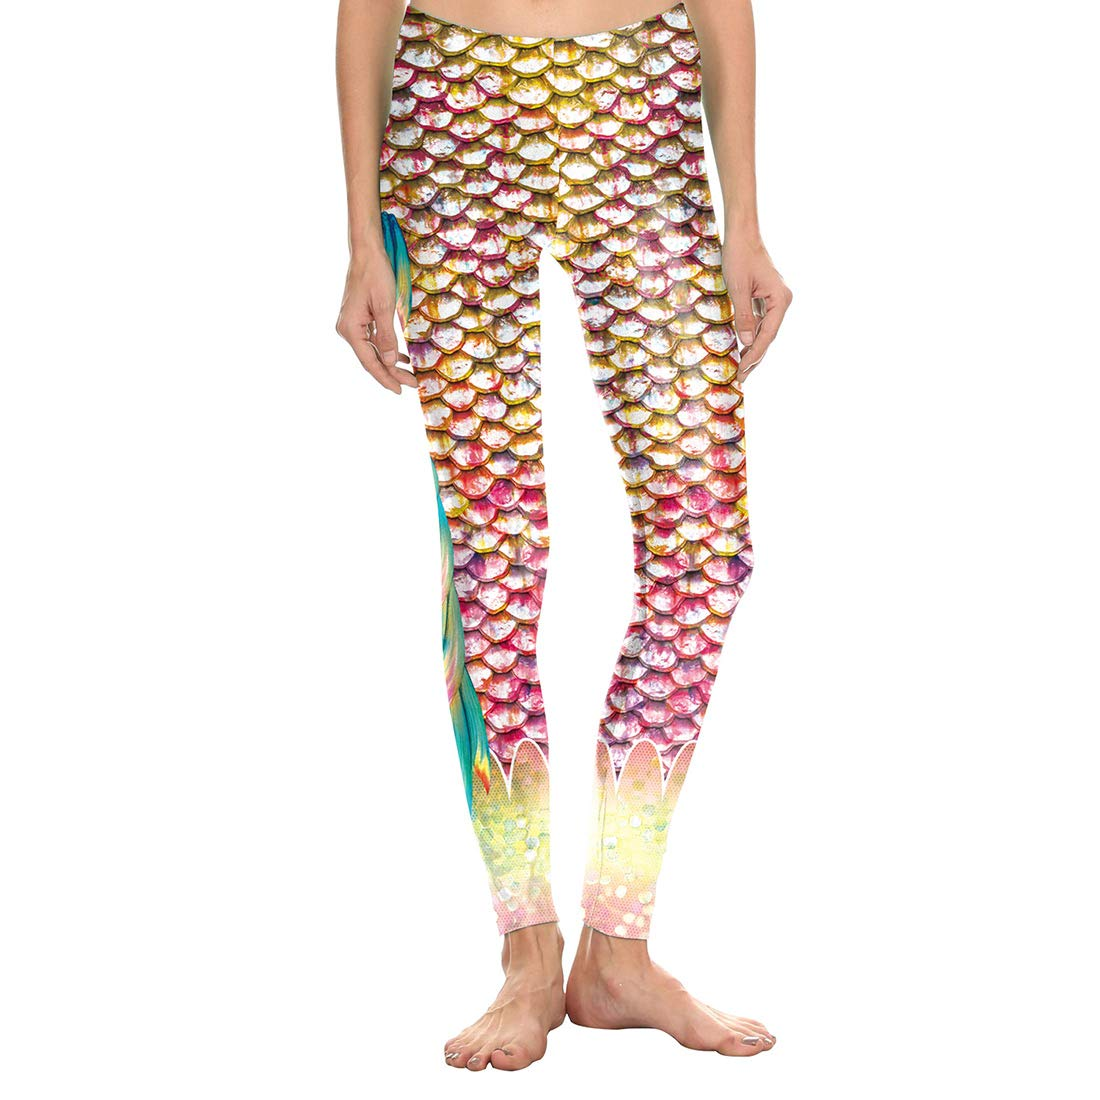 FEOYA Womens Fish Scale Leggings with Fin Printed Shiny Skiny Tights